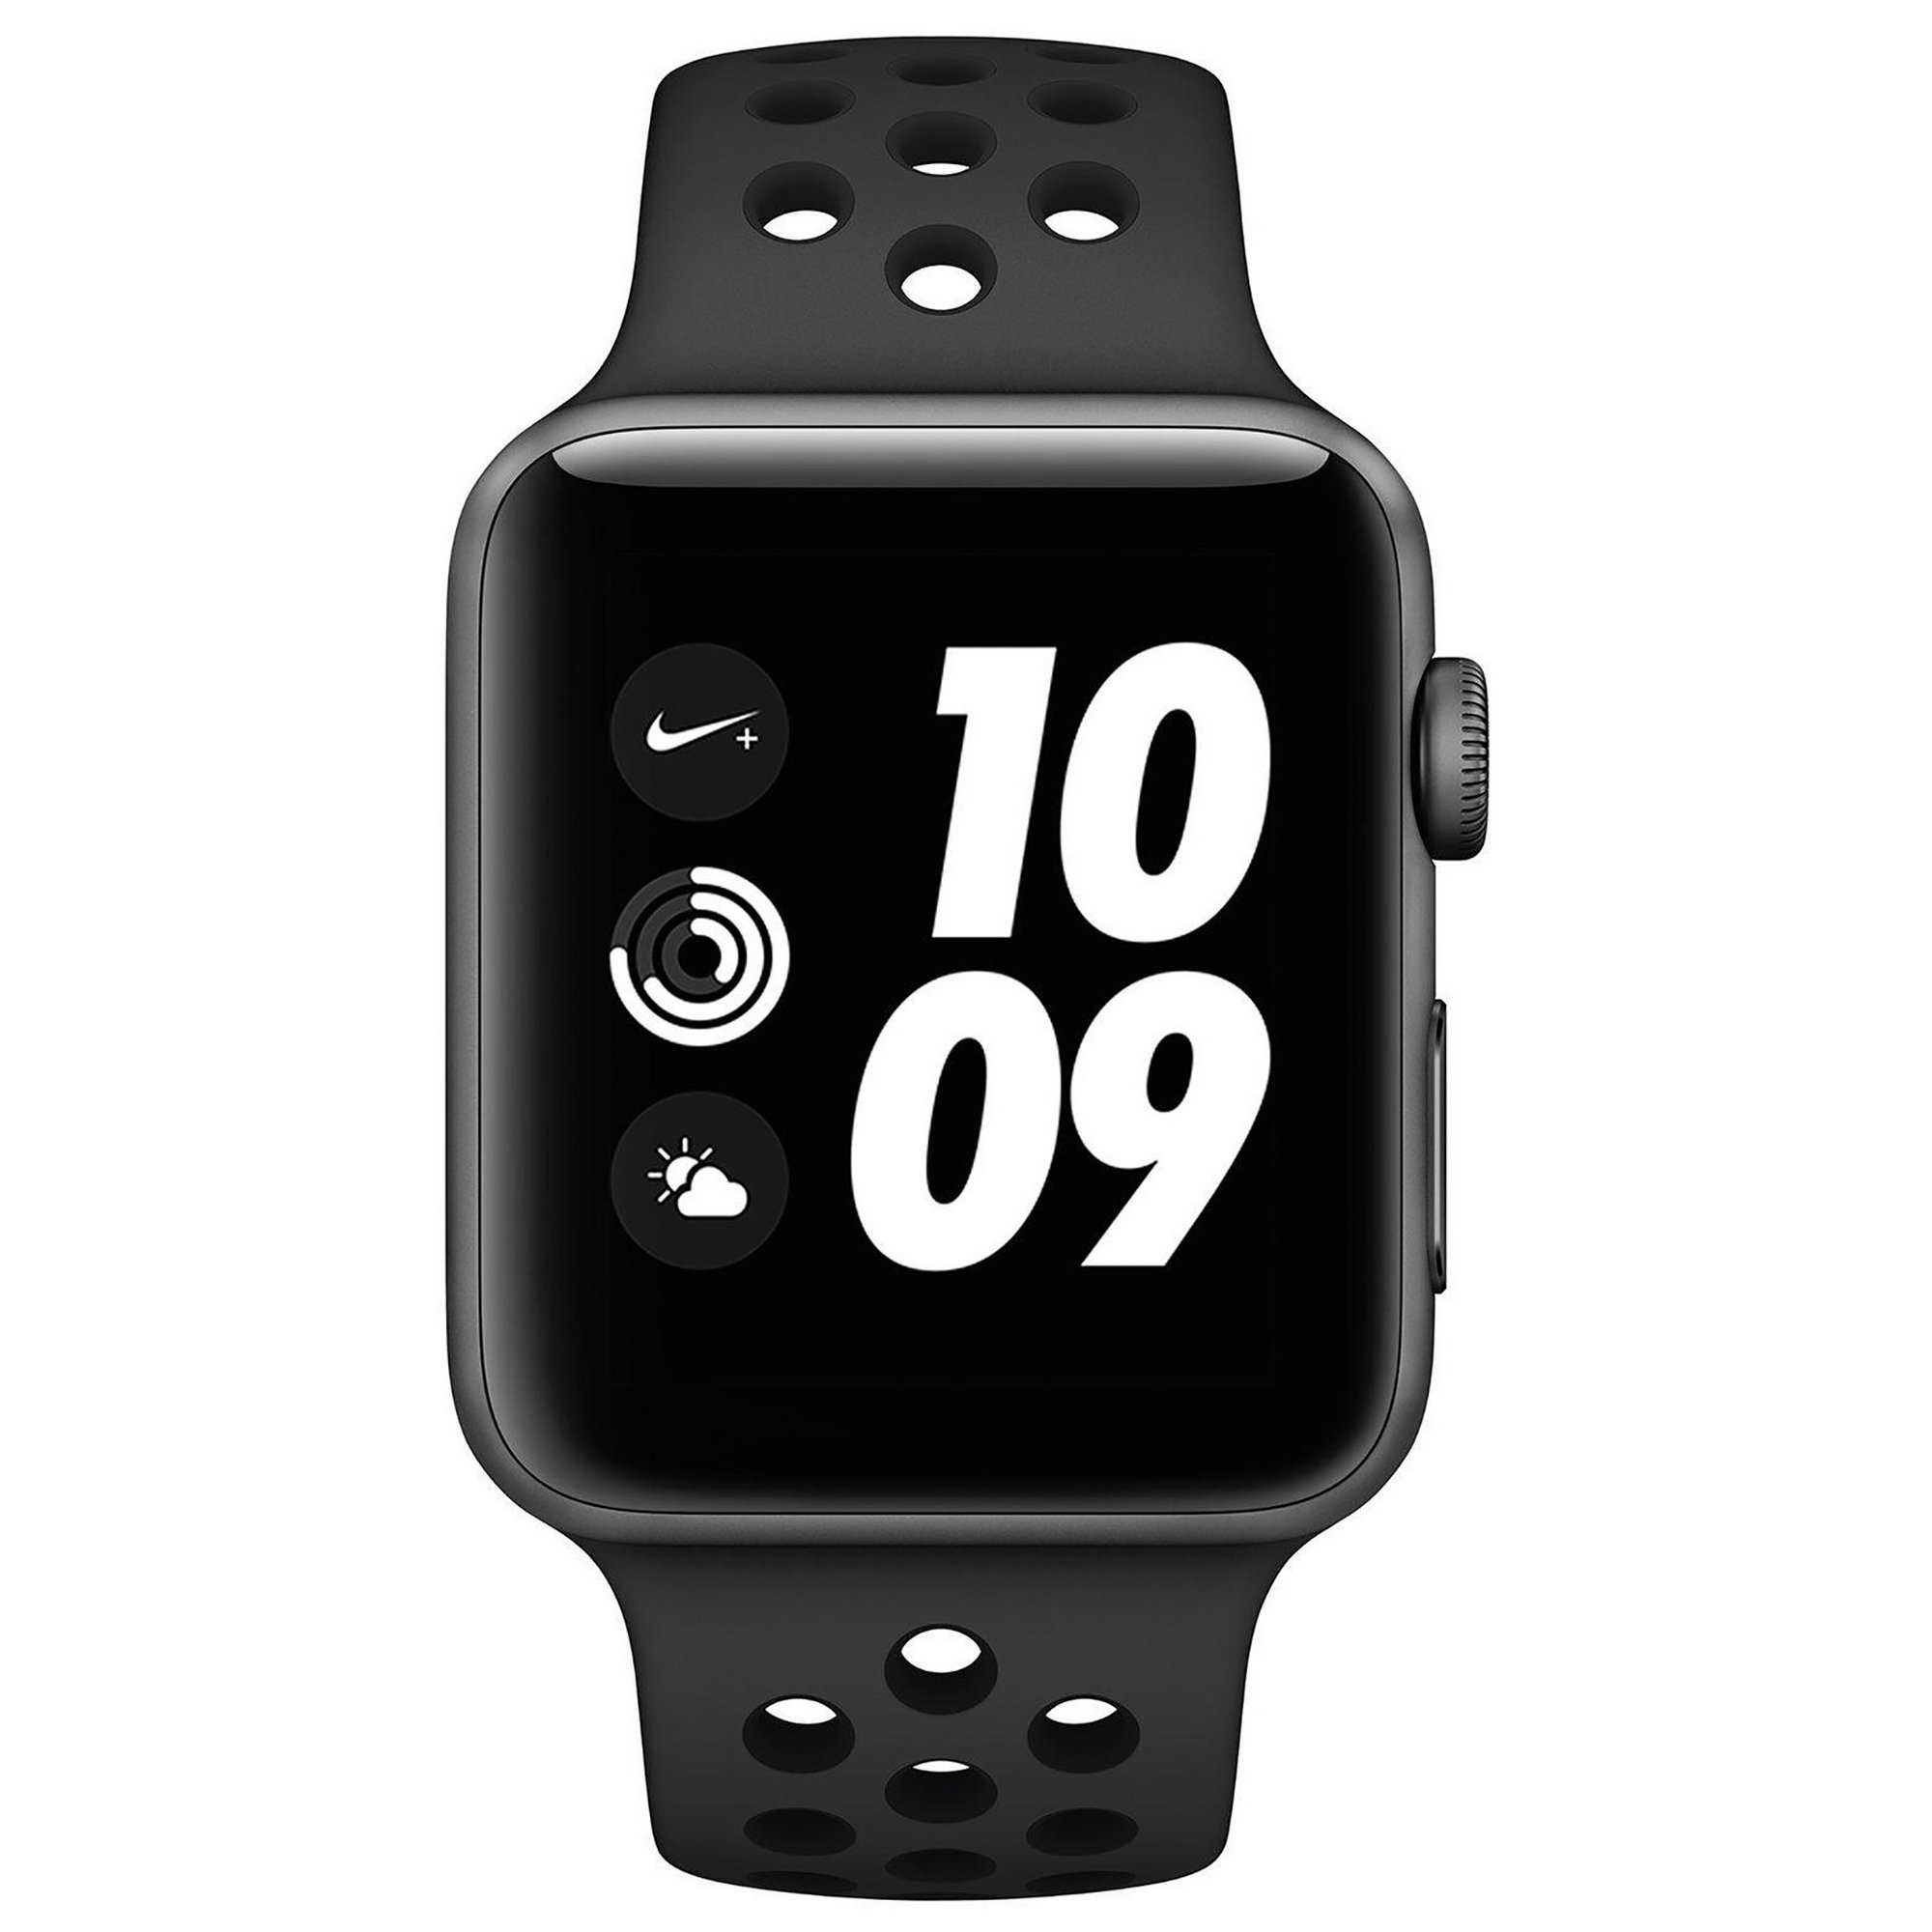 Image of Apple Watch Nike+ Series 3 42mm GPS Watch